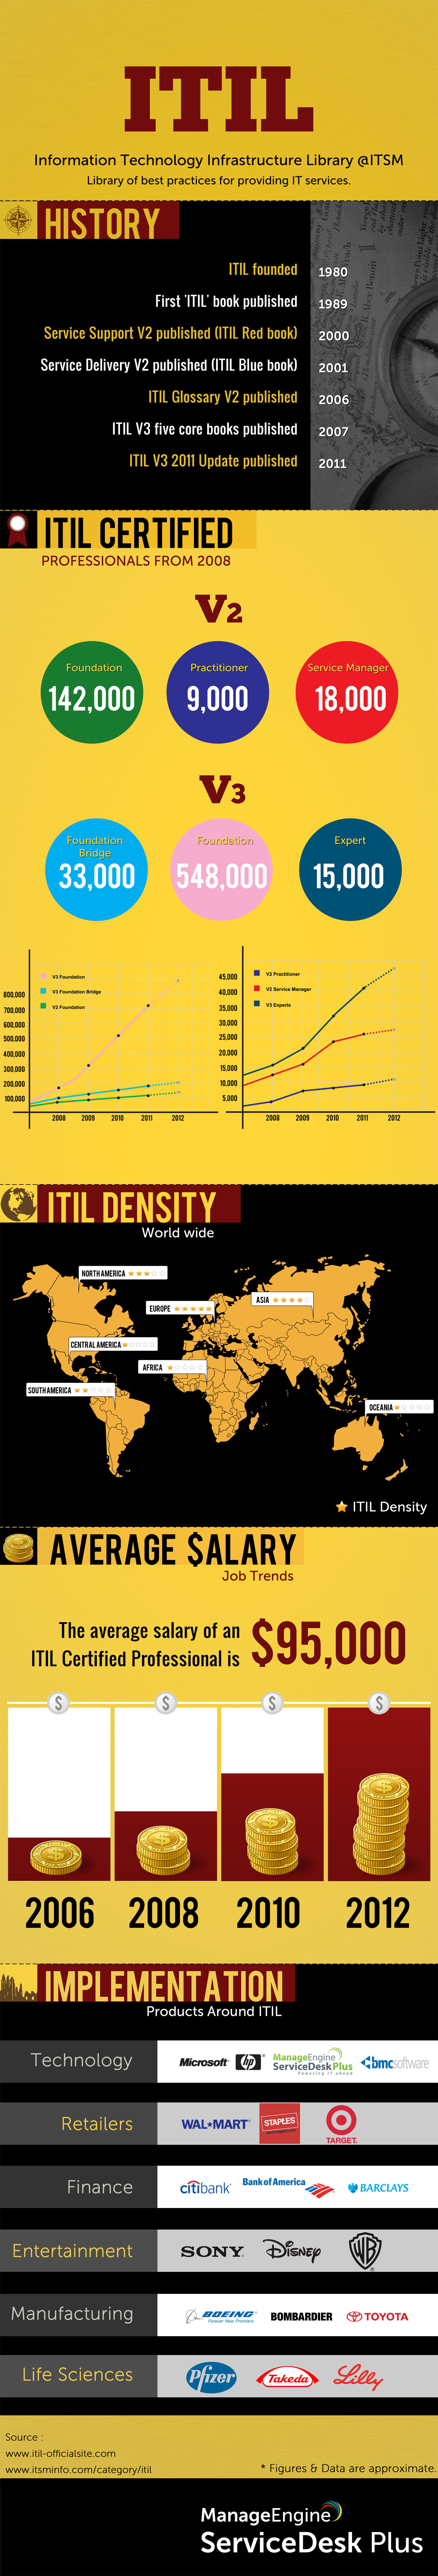 ITIL Infographics